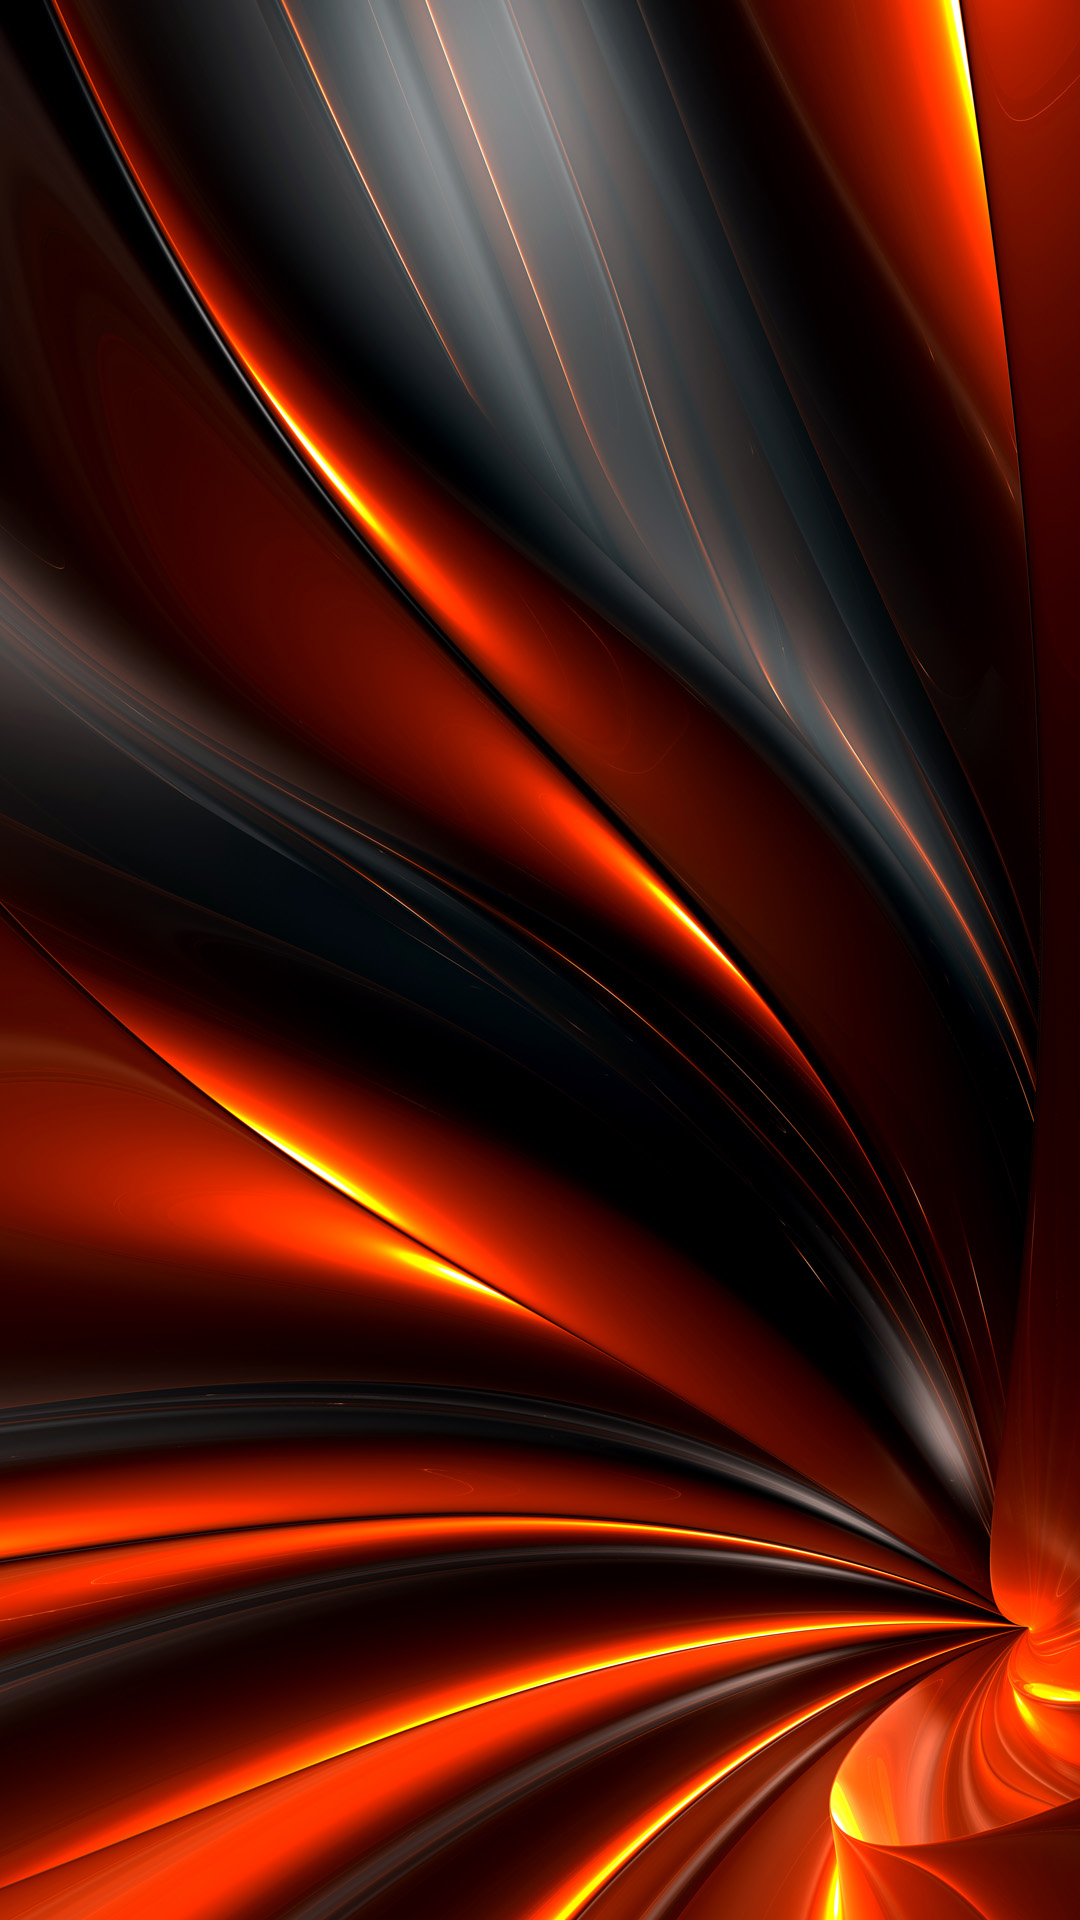 Abstract Fire Android Wallpaper